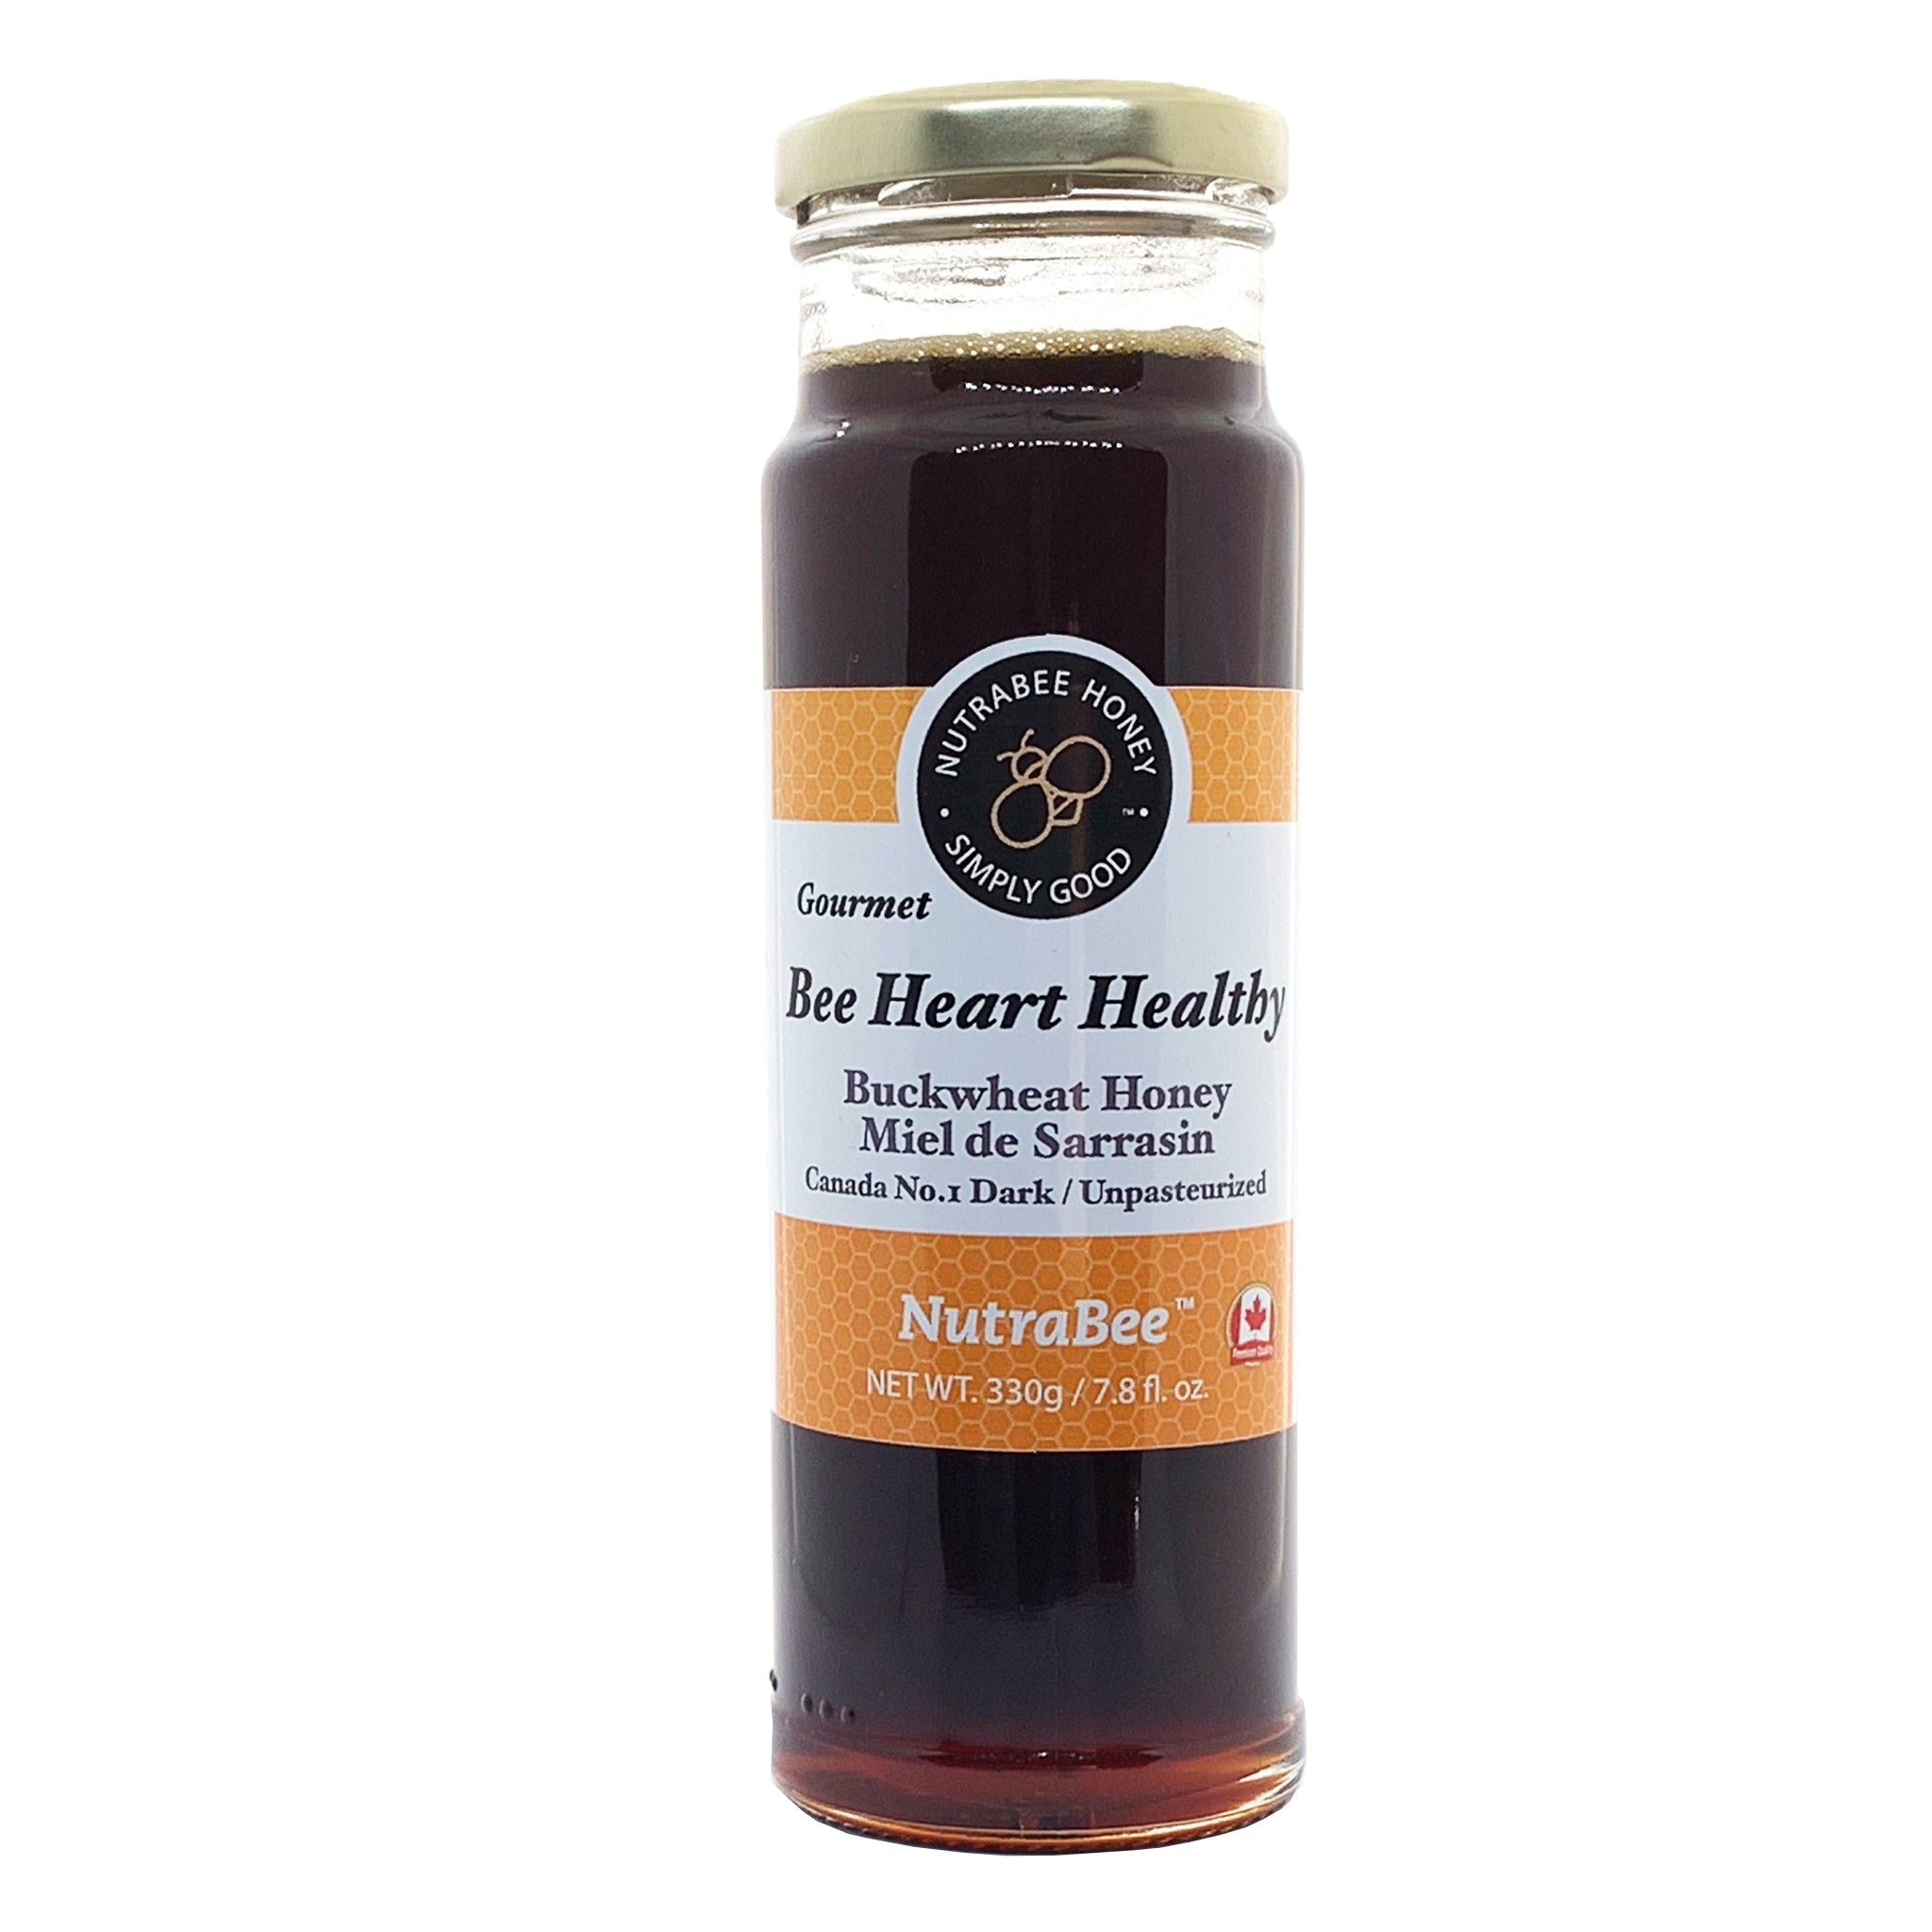 Bee Heart Healthy Buckwheat Honey